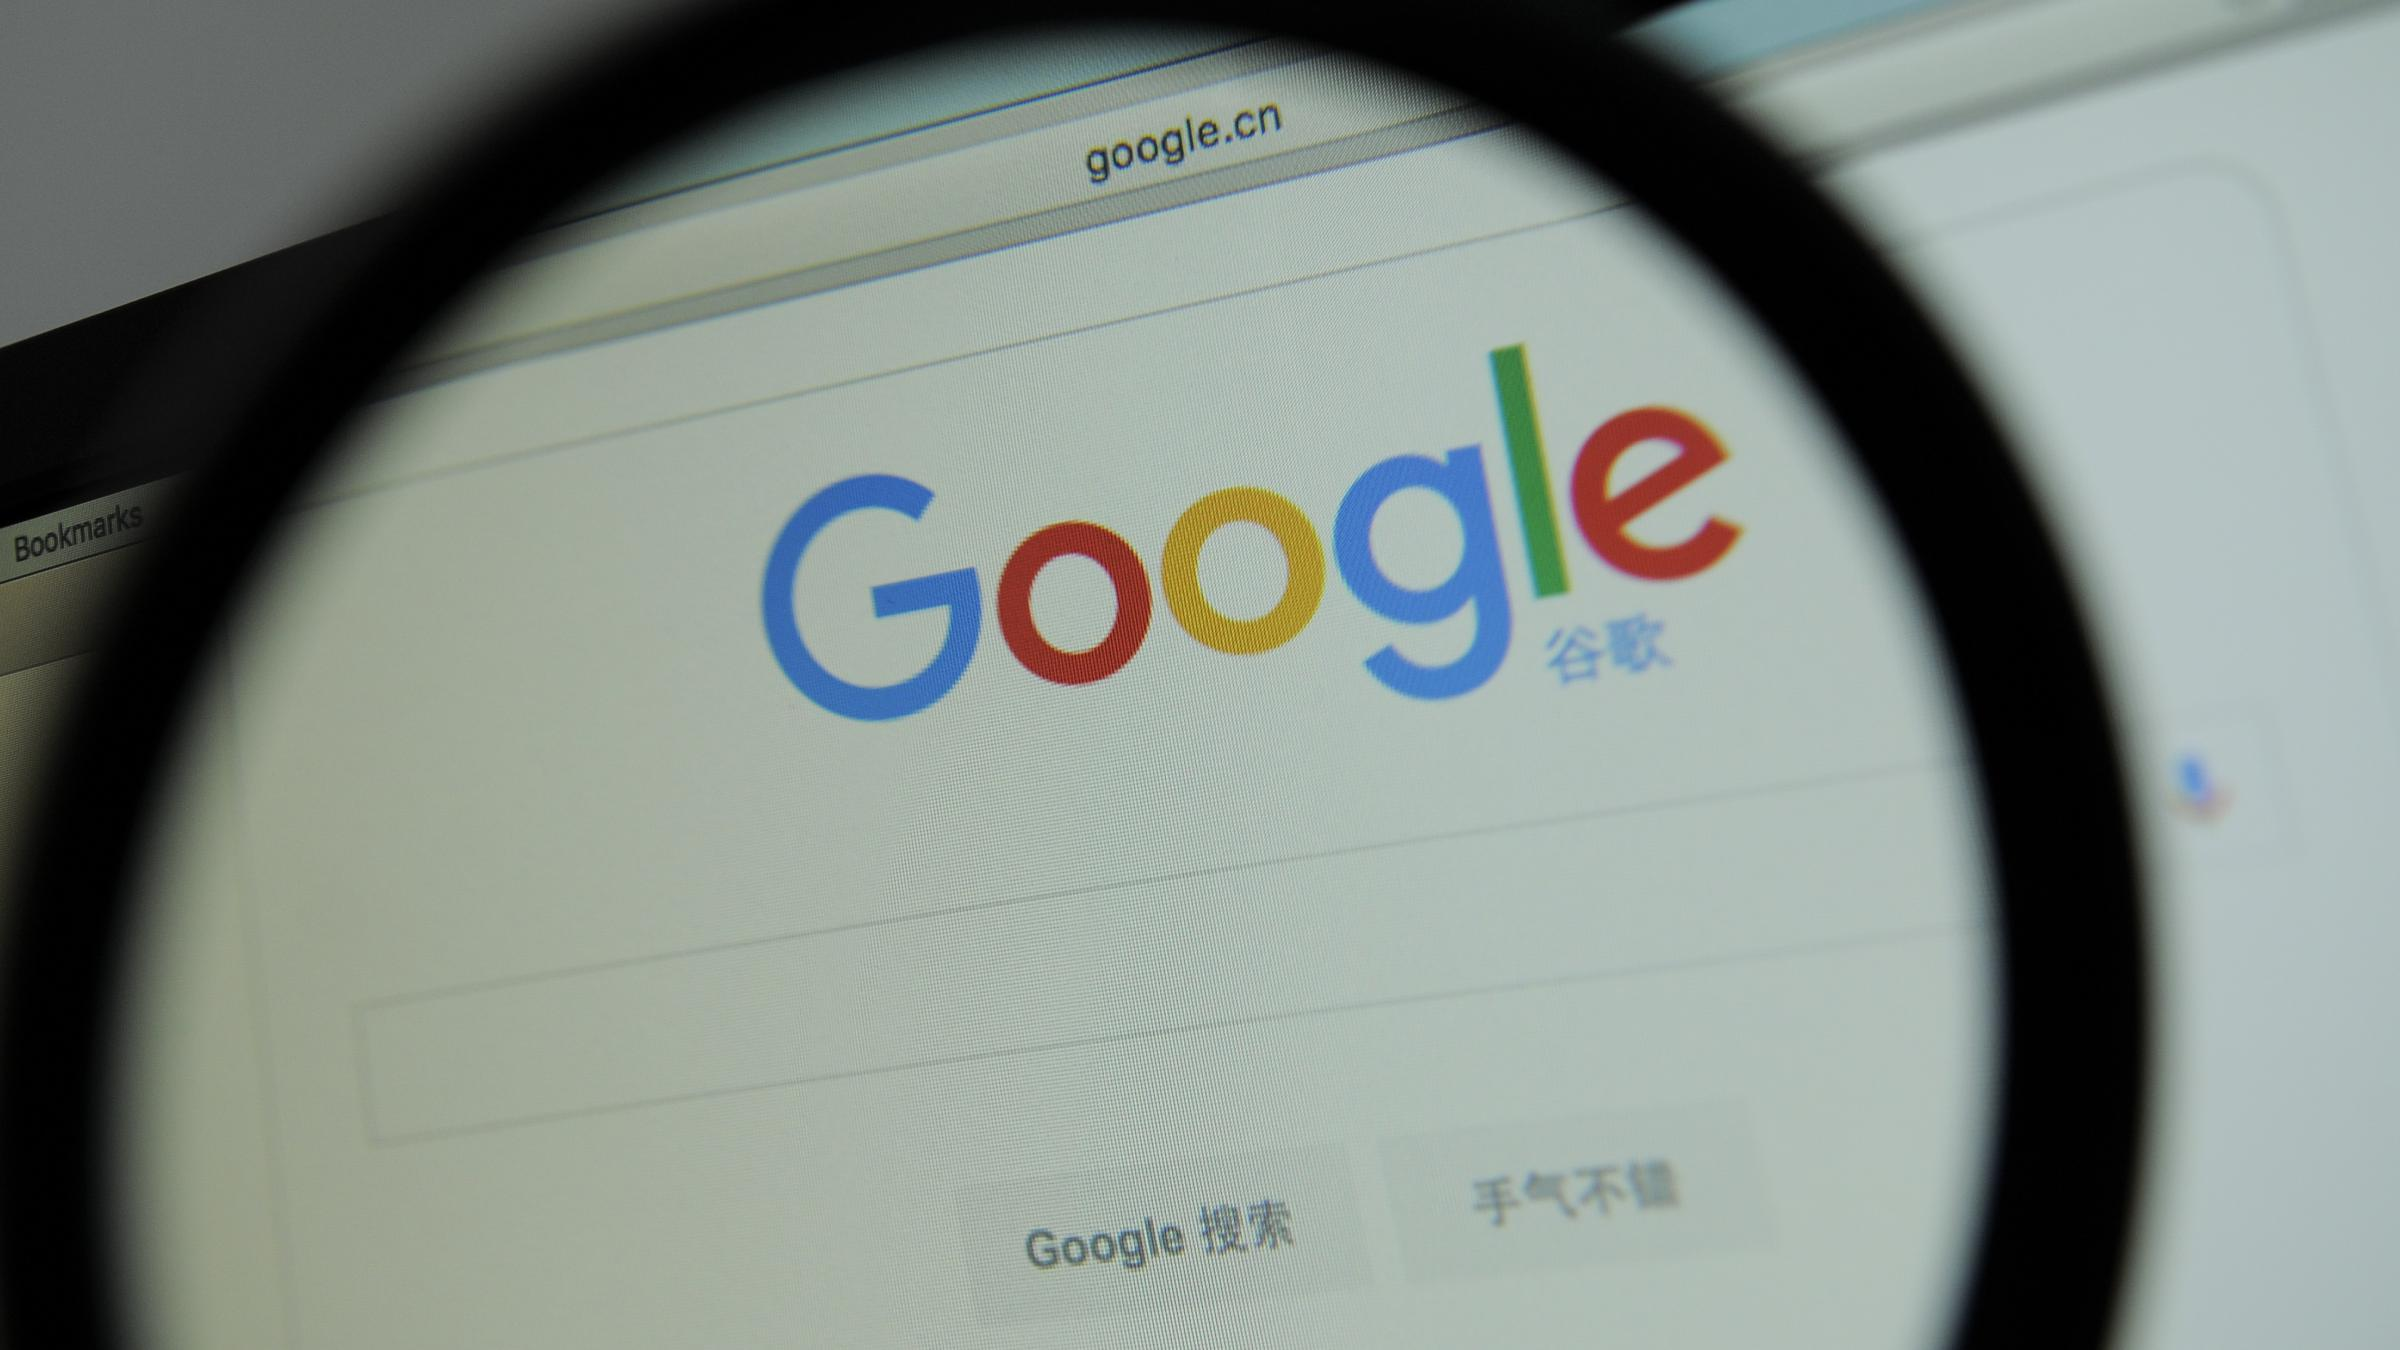 Google may reverse course and launch a restricted Google Search in China